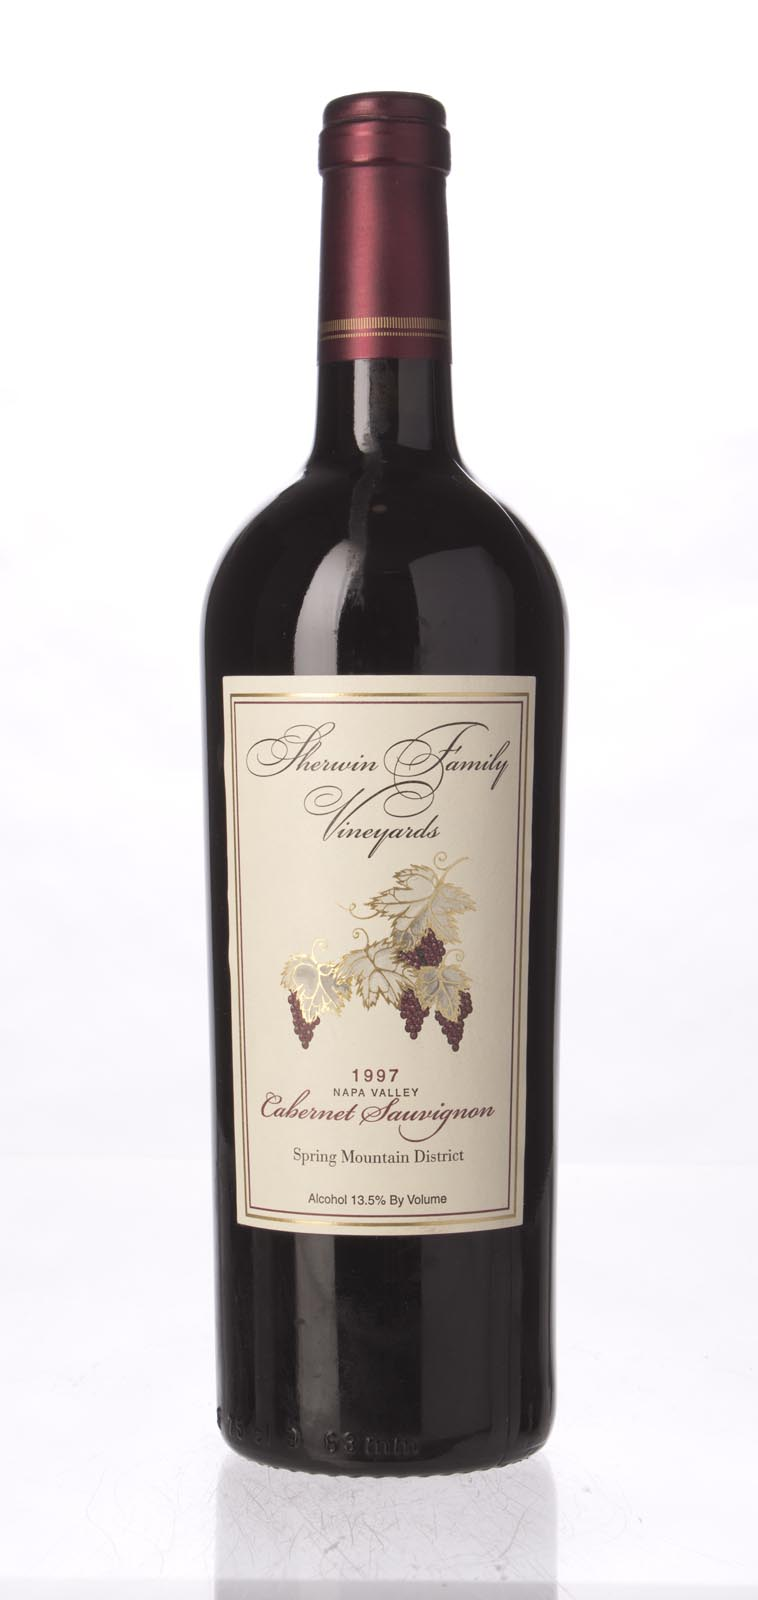 Sherwin Family Cabernet Sauvignon Spring Mountain 1997, 750mL (WS92) from The BPW - Merchants of rare and fine wines.